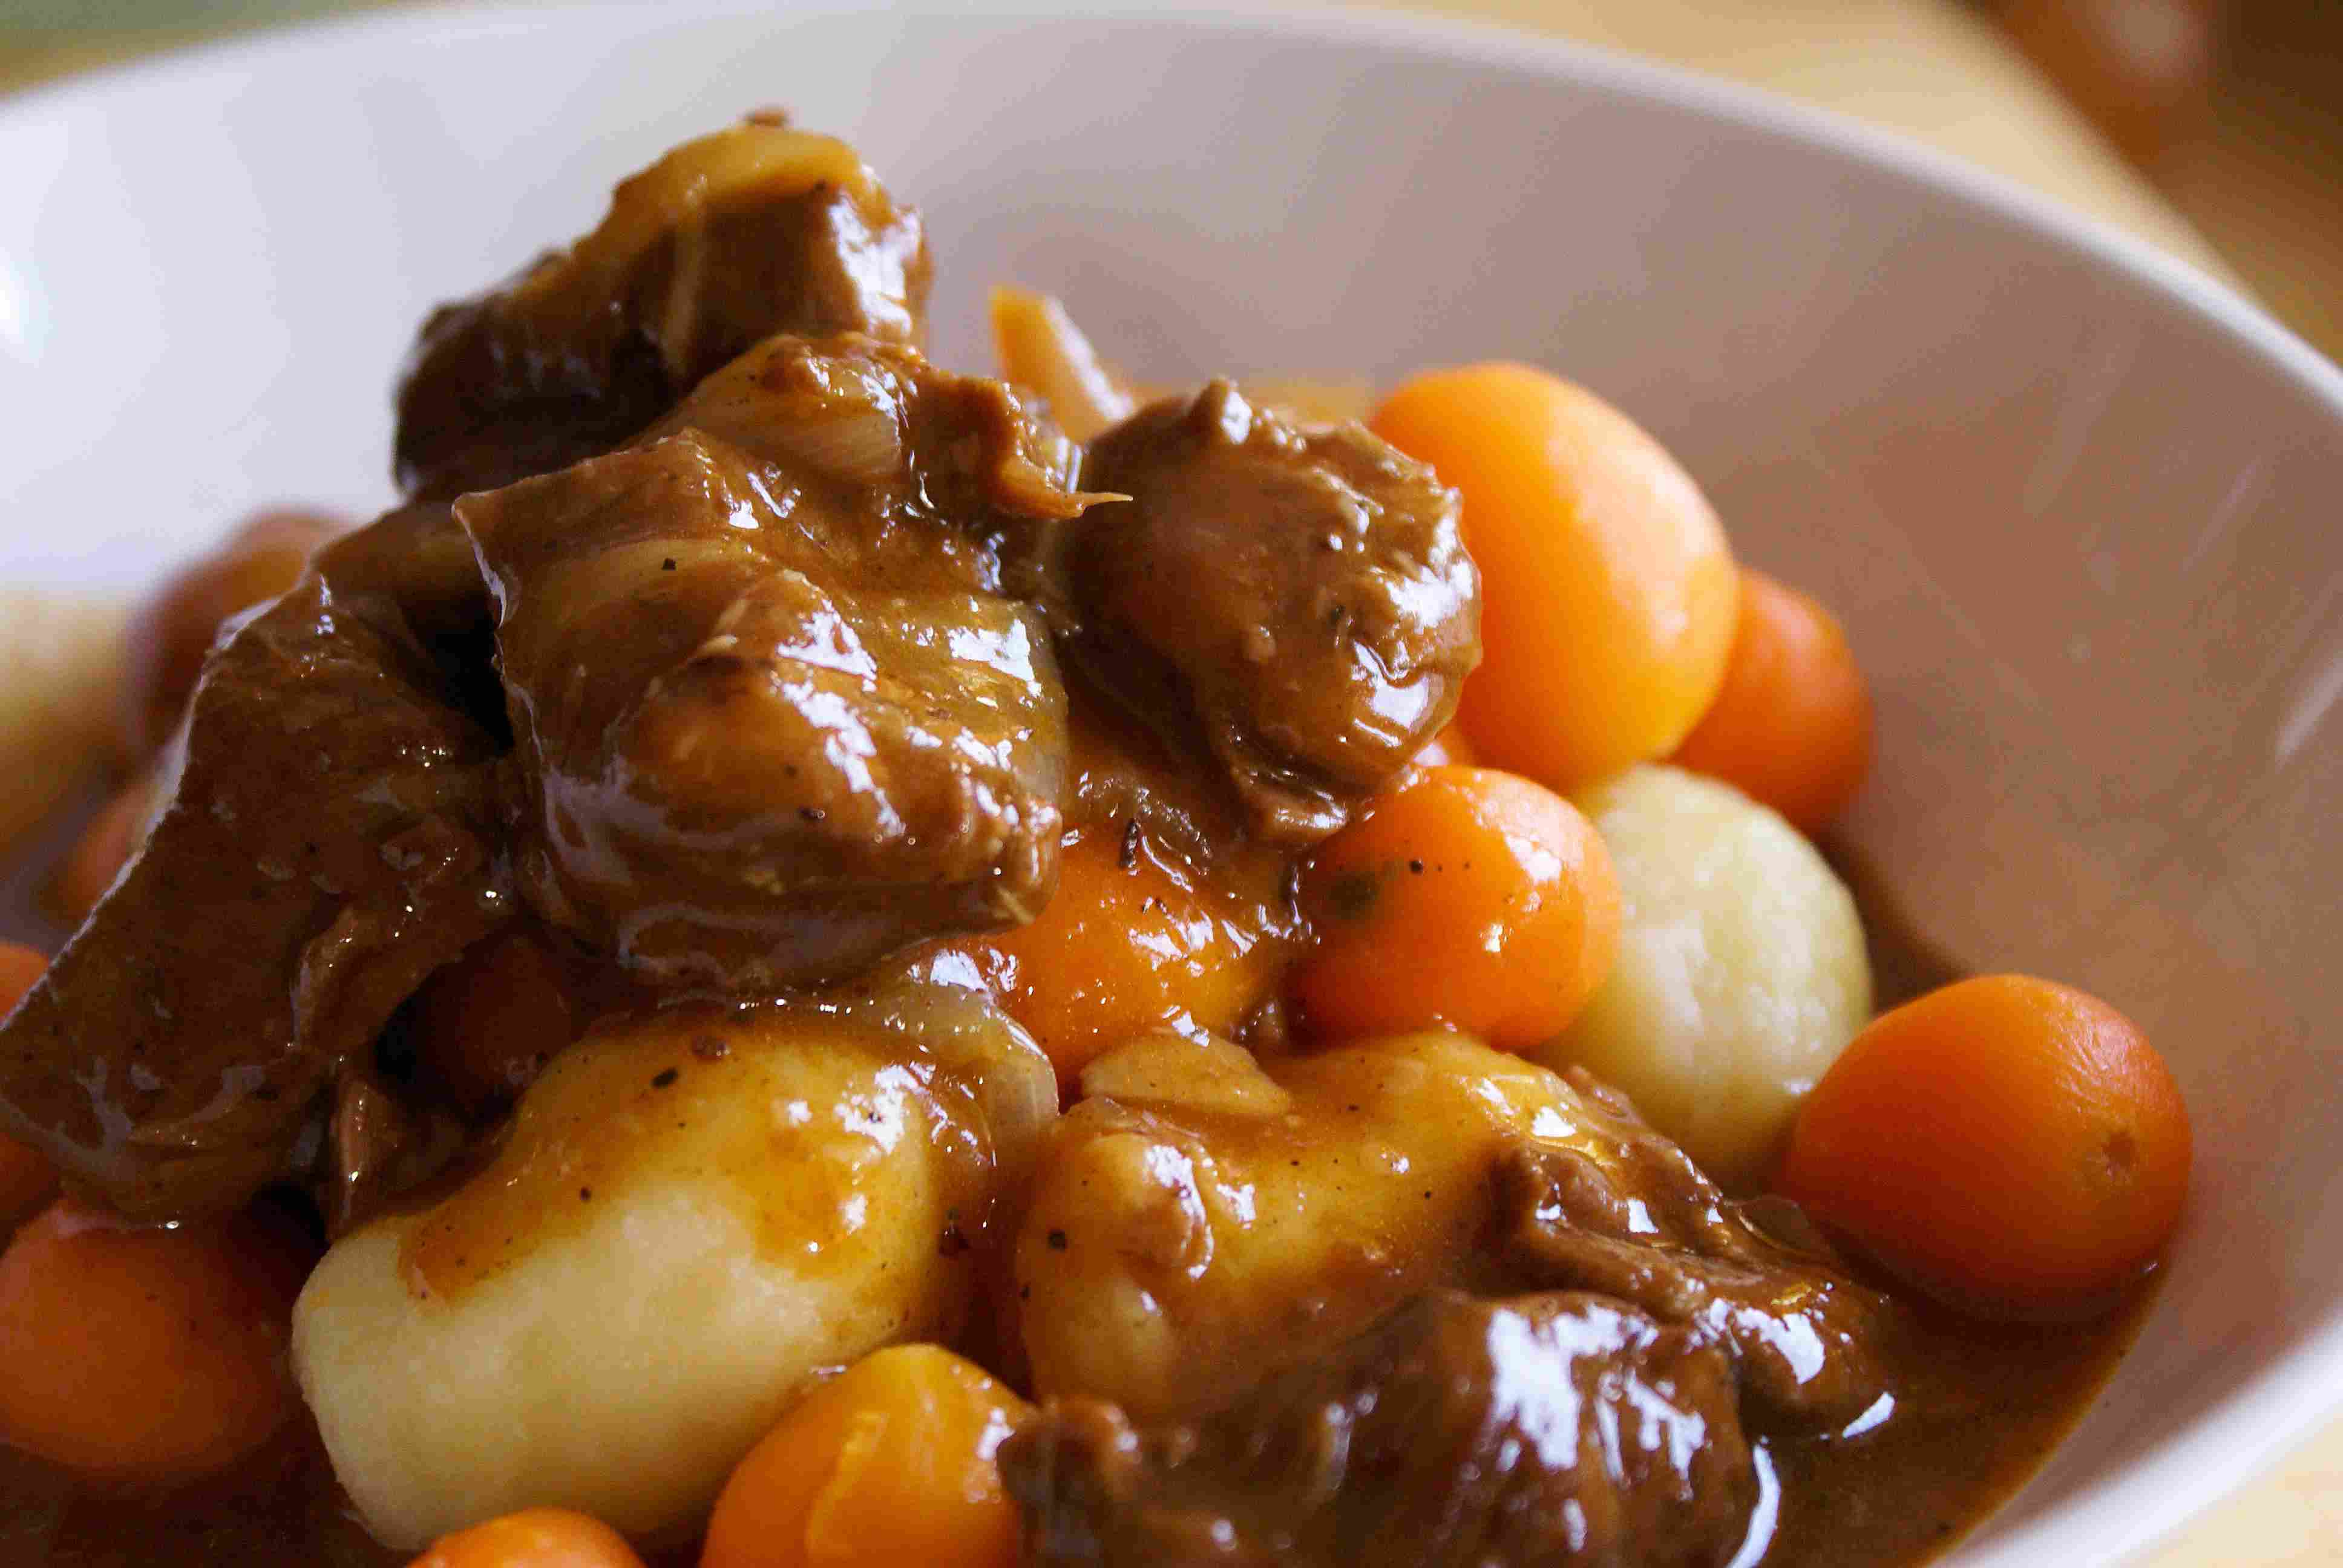 Beef stew with small dumplings and carrots